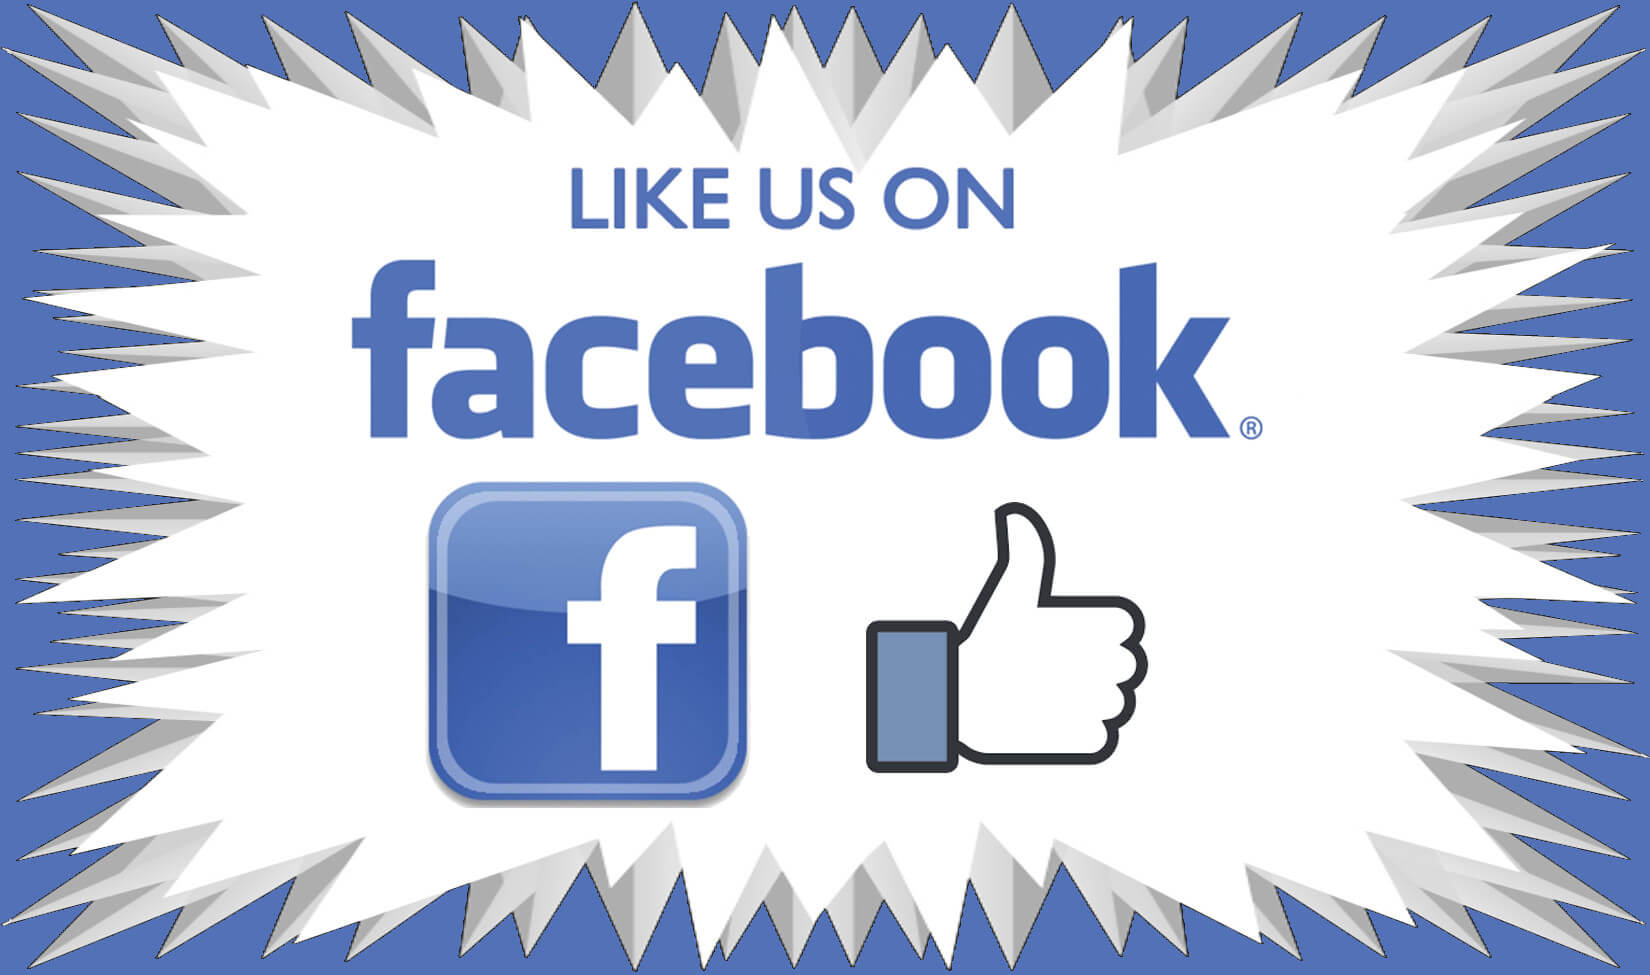 Like Us on Facebook badge